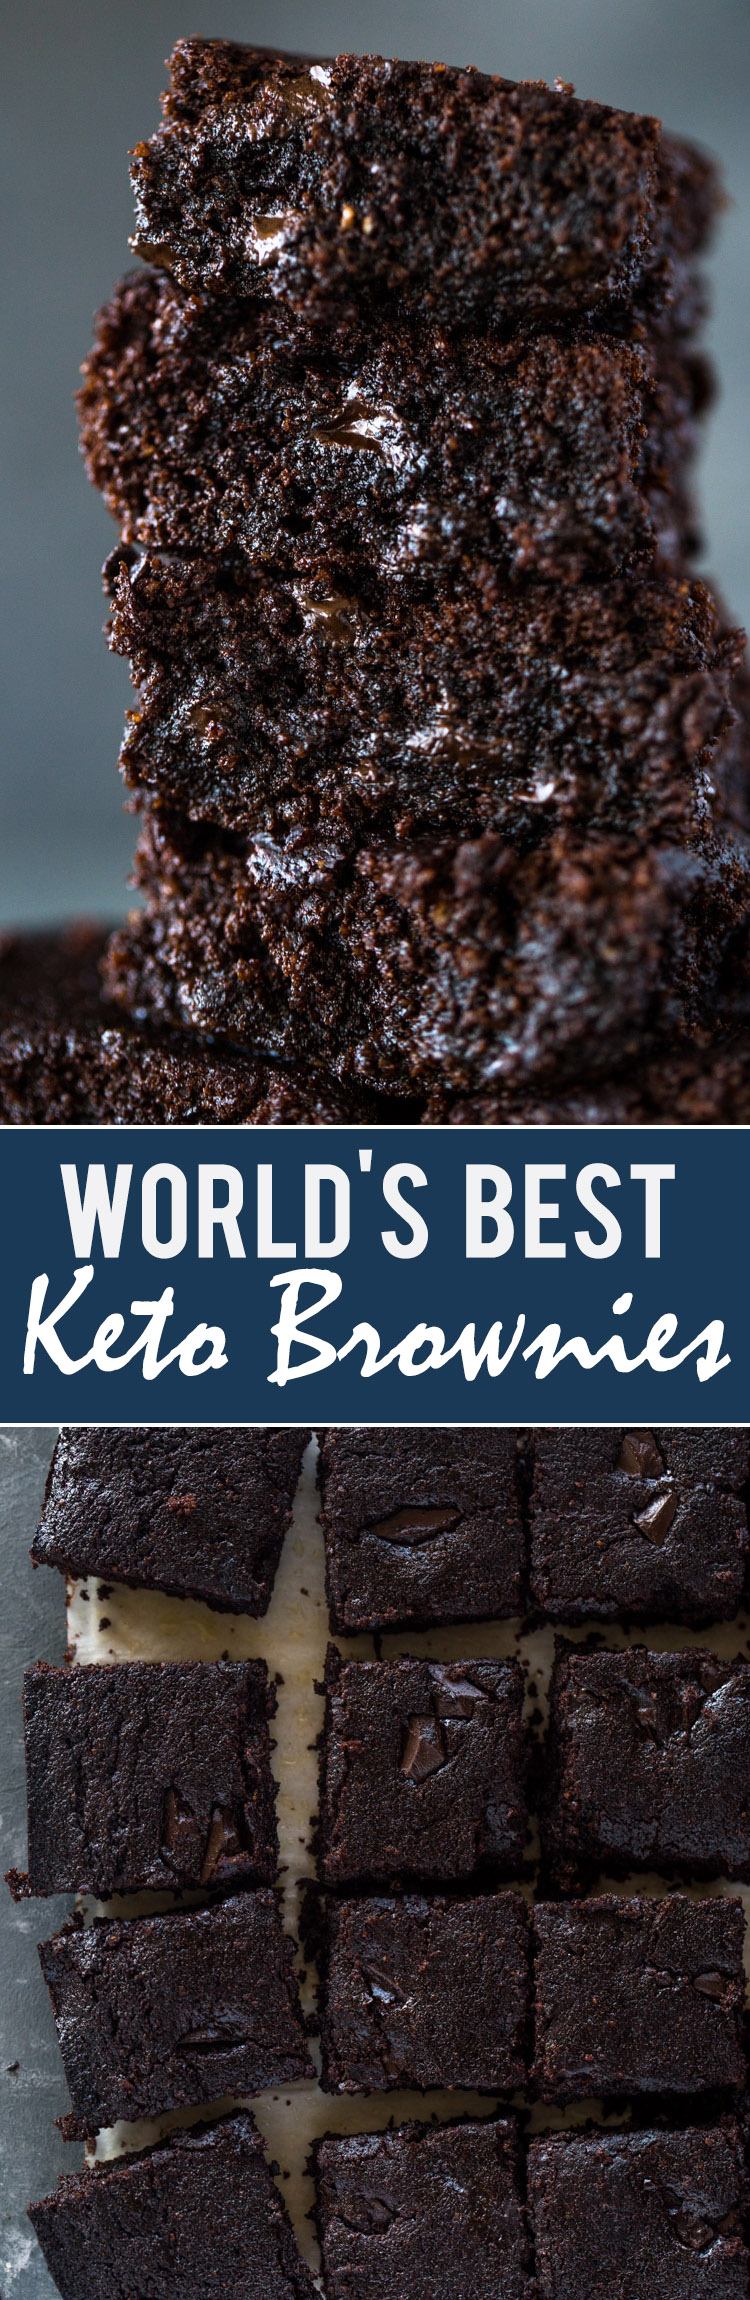 keto brownies with almond flour